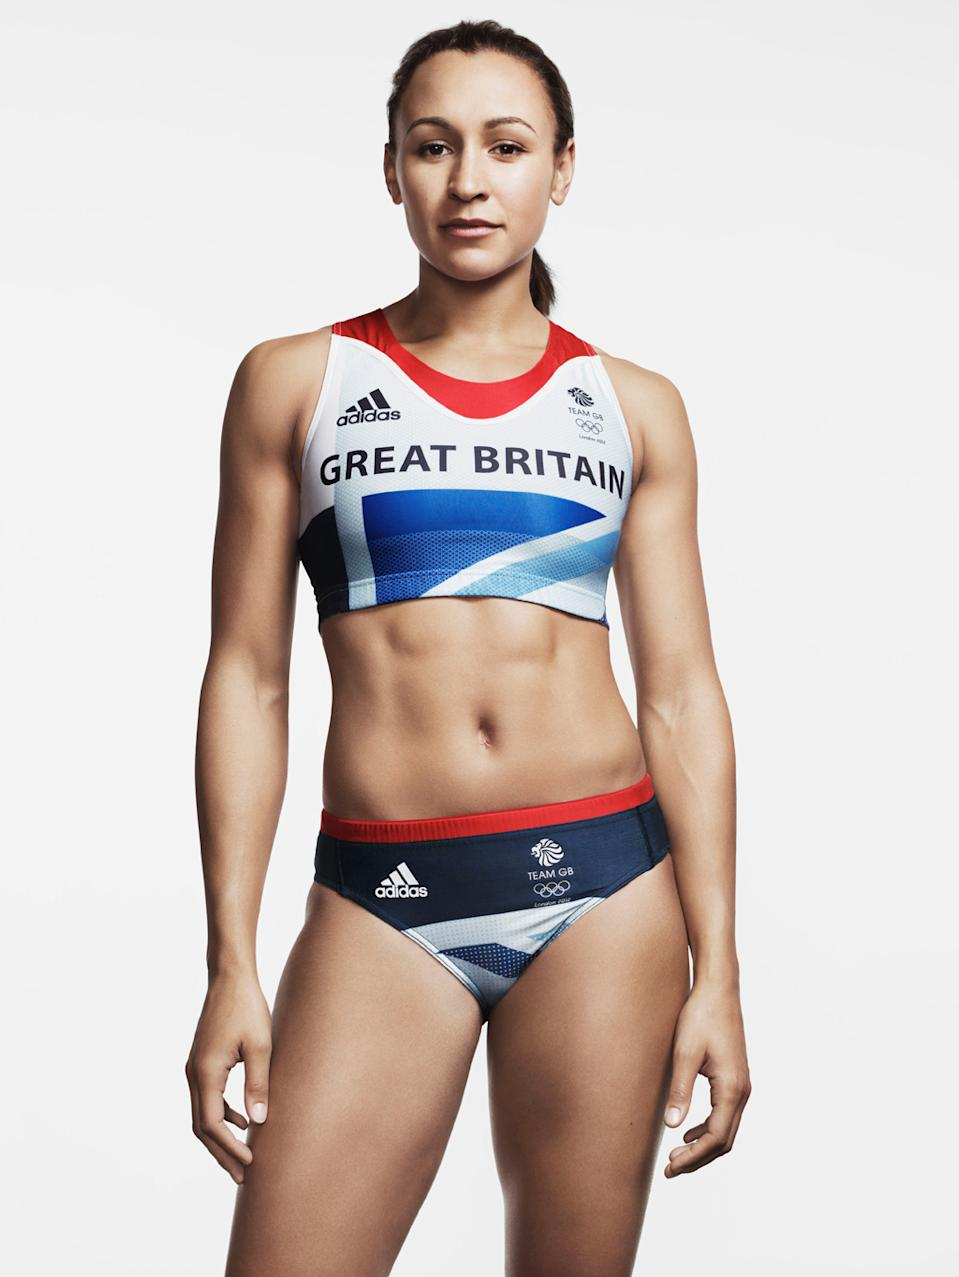 """<b>Jessica Ennis</b><br> Nicknamed the """"golden girl"""" of British athletics, world heptathlon champion Jessica Ennis's flawless physique has already earned her a small fortune from sponsorship deals with Powerade, BP, Adidas and Olay. (Photo by adidas via Getty Images)"""